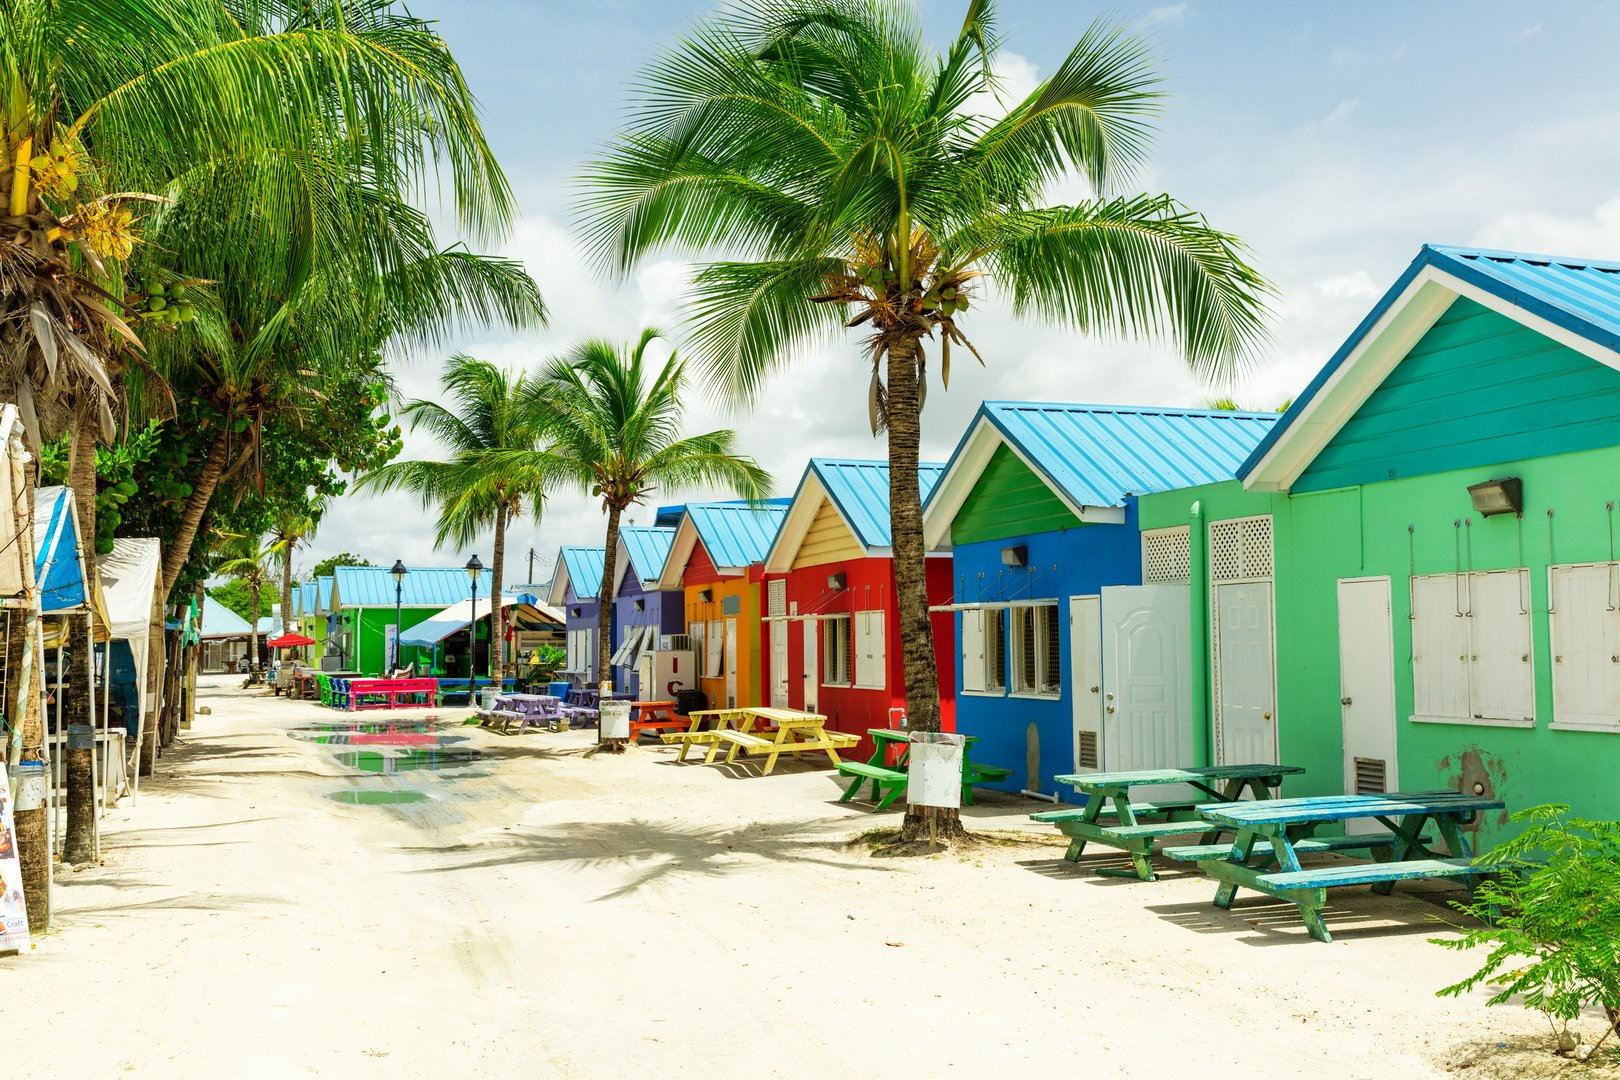 Colorful houses on the tropical island of Barbados in the Caribbean